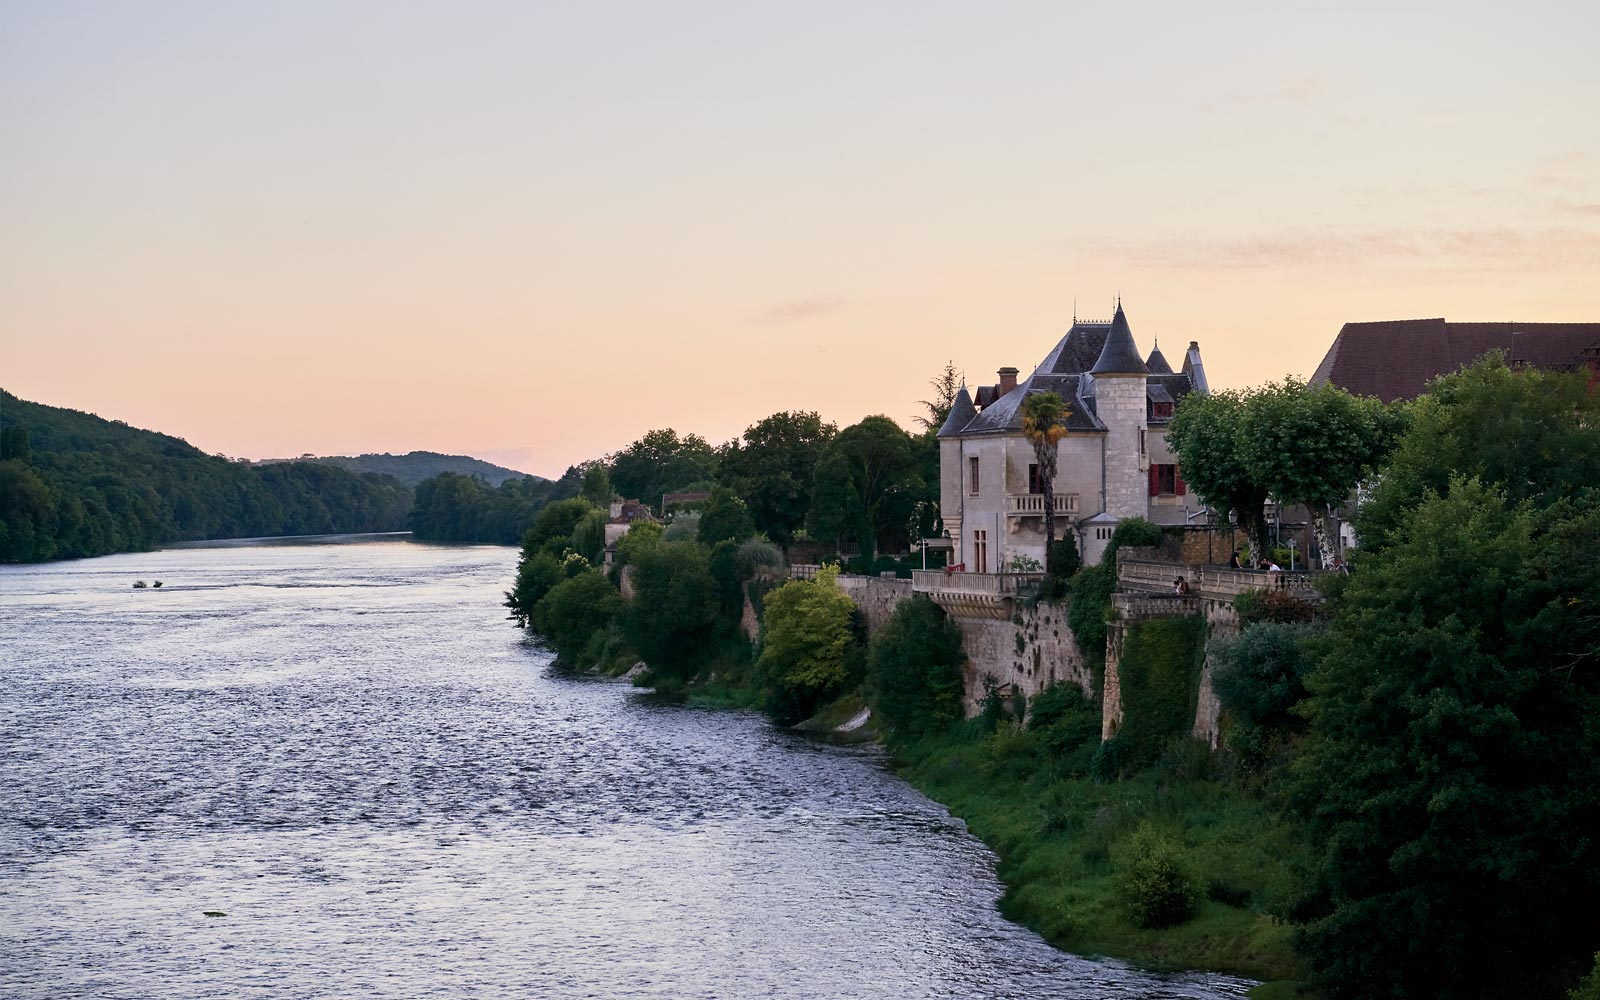 The Dordogne River at Chateau Lalinde